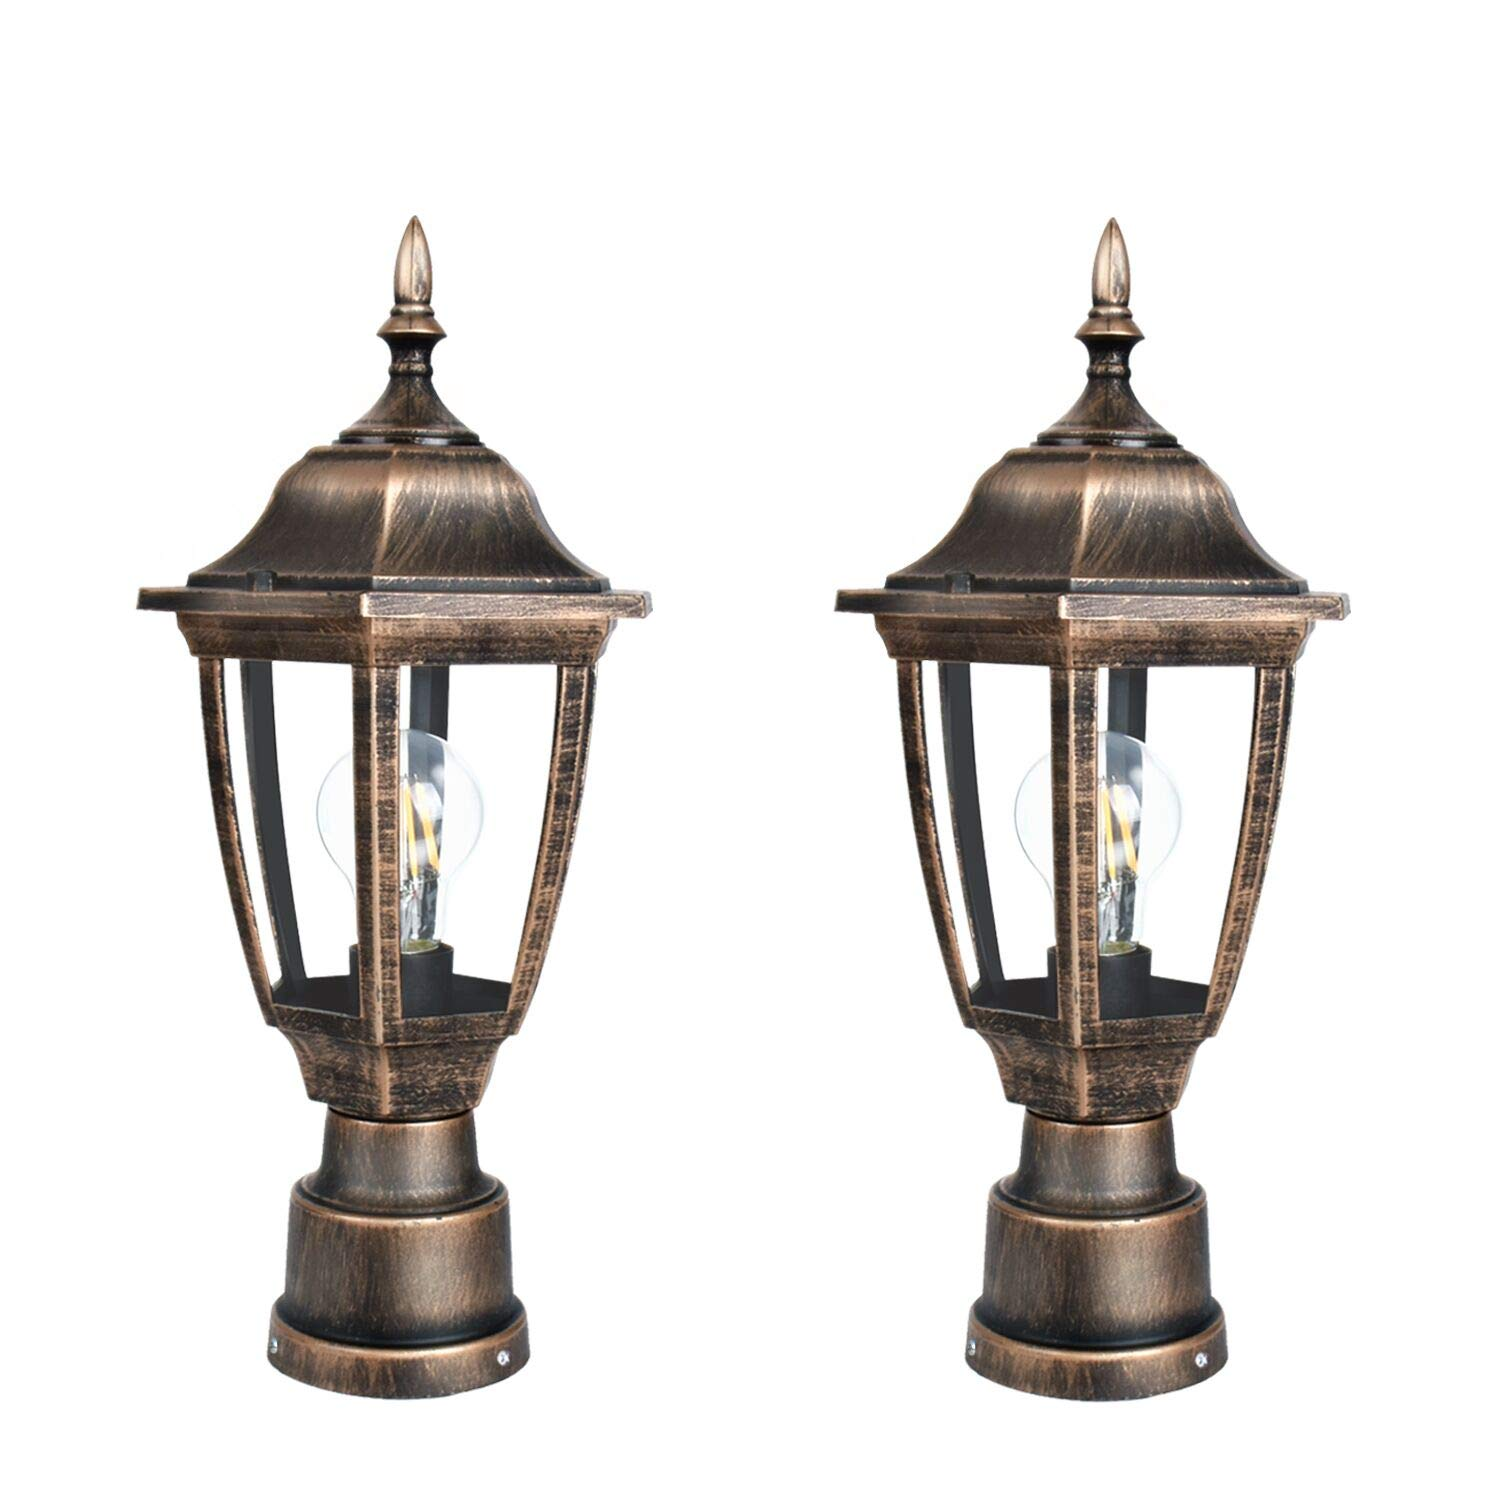 FUDESY 2-Pack Post Light Fixtures Outdoor,Plastic LED Black-Golden Post Lanterns Include 12W 1200LM Edison Filament Bulb(Corded-Electric), FDS2543G